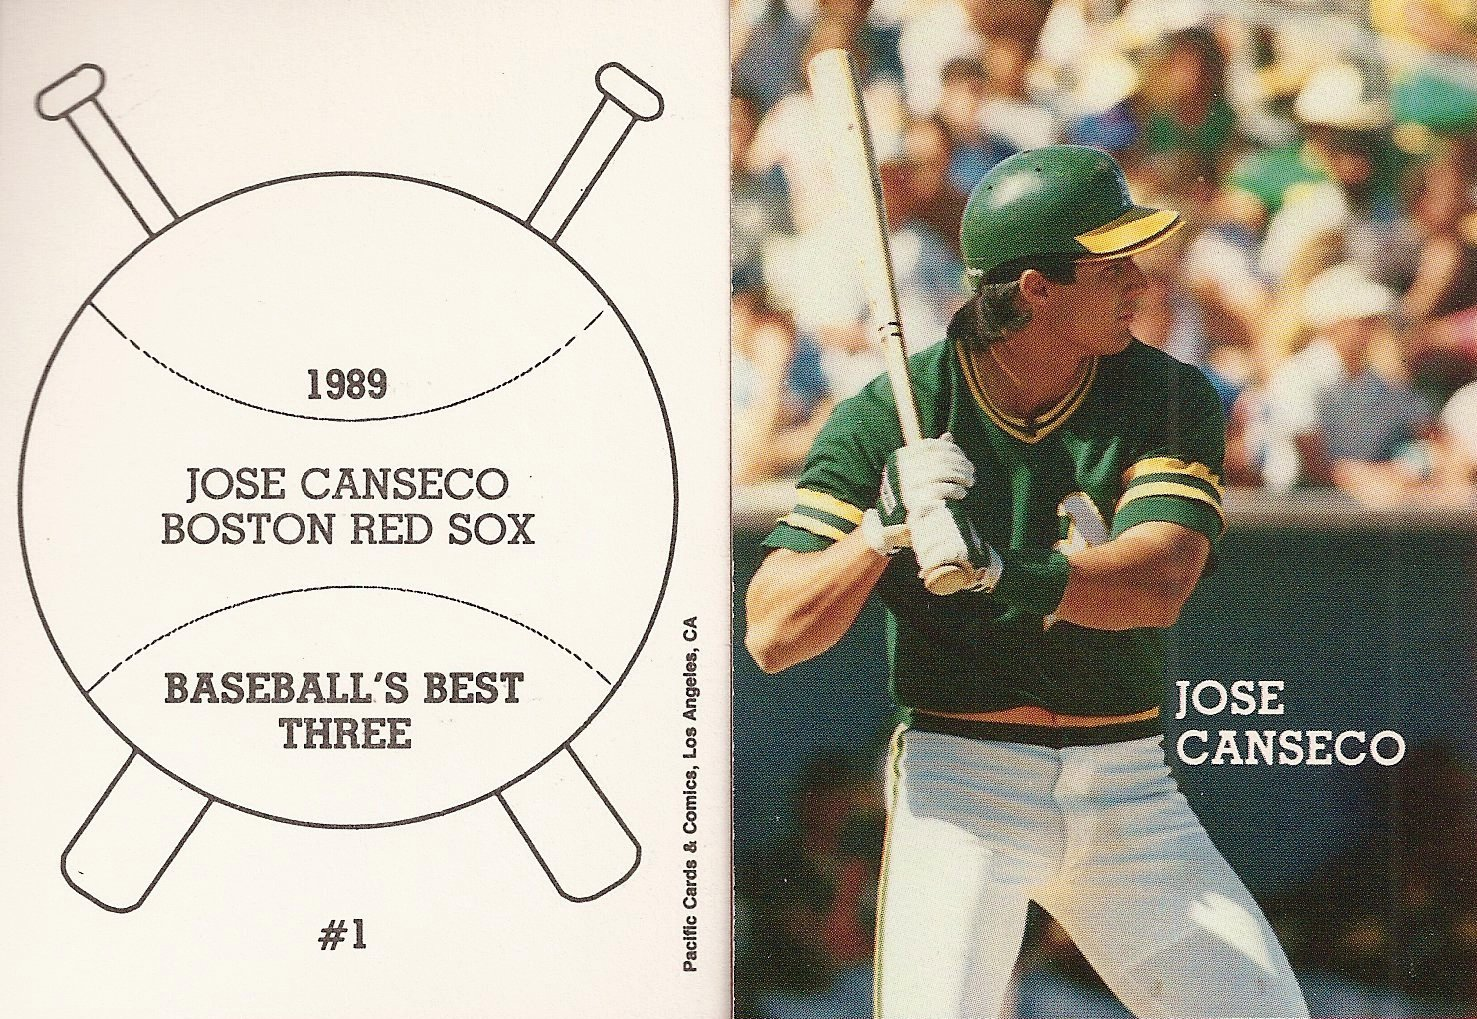 1989 Pacific Cards & Comics Baseballs Best Three